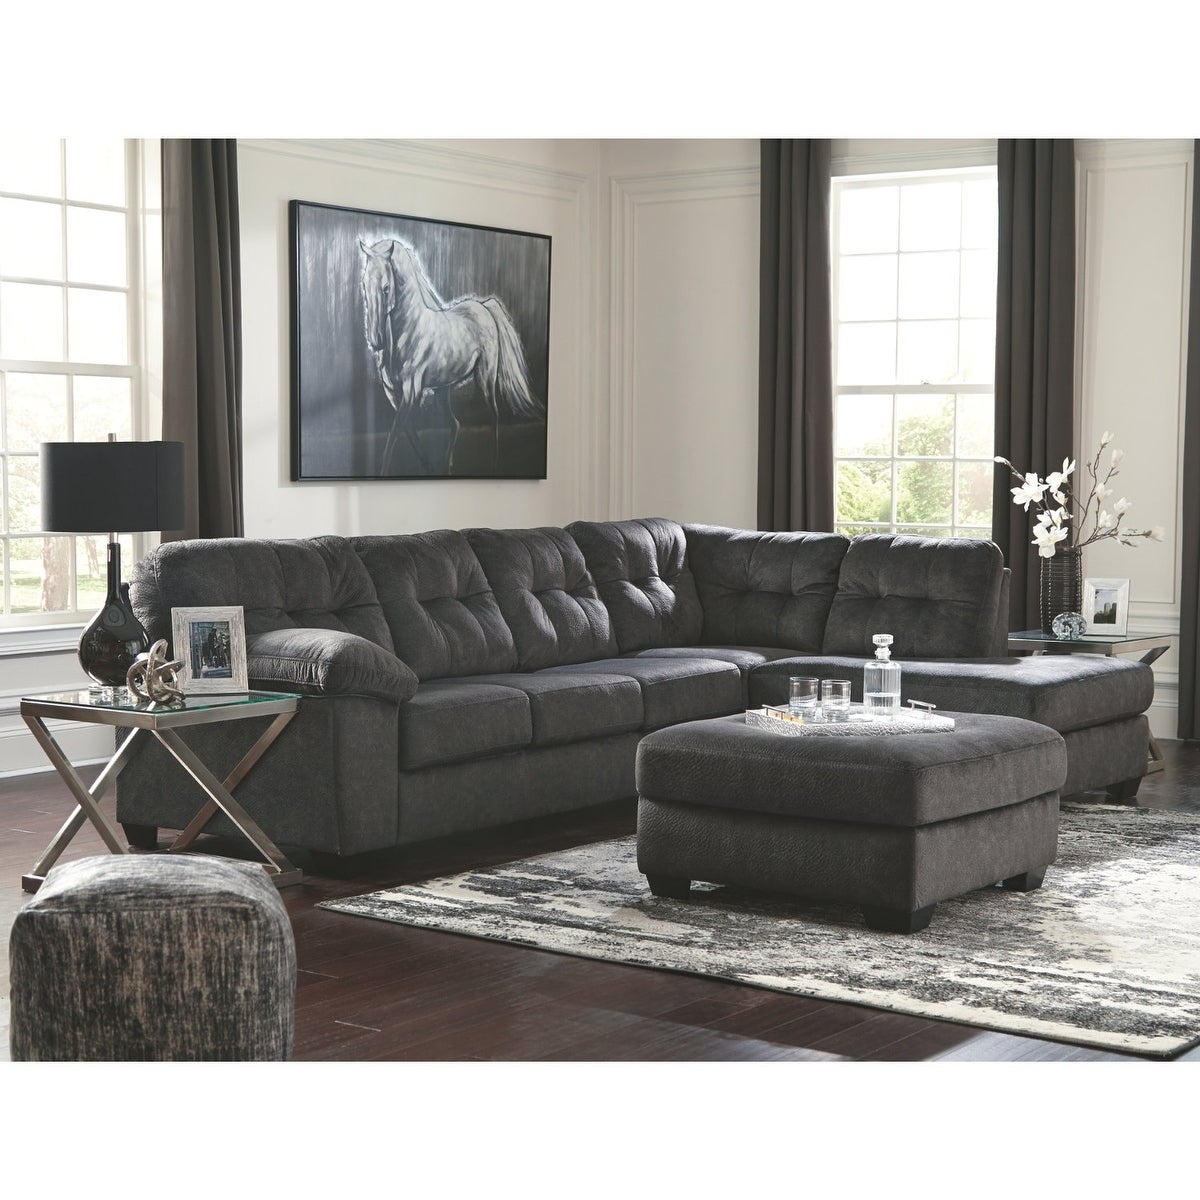 Shop Accrington Grey Fabric Upholstered 2-piece Sectional Sofa ...